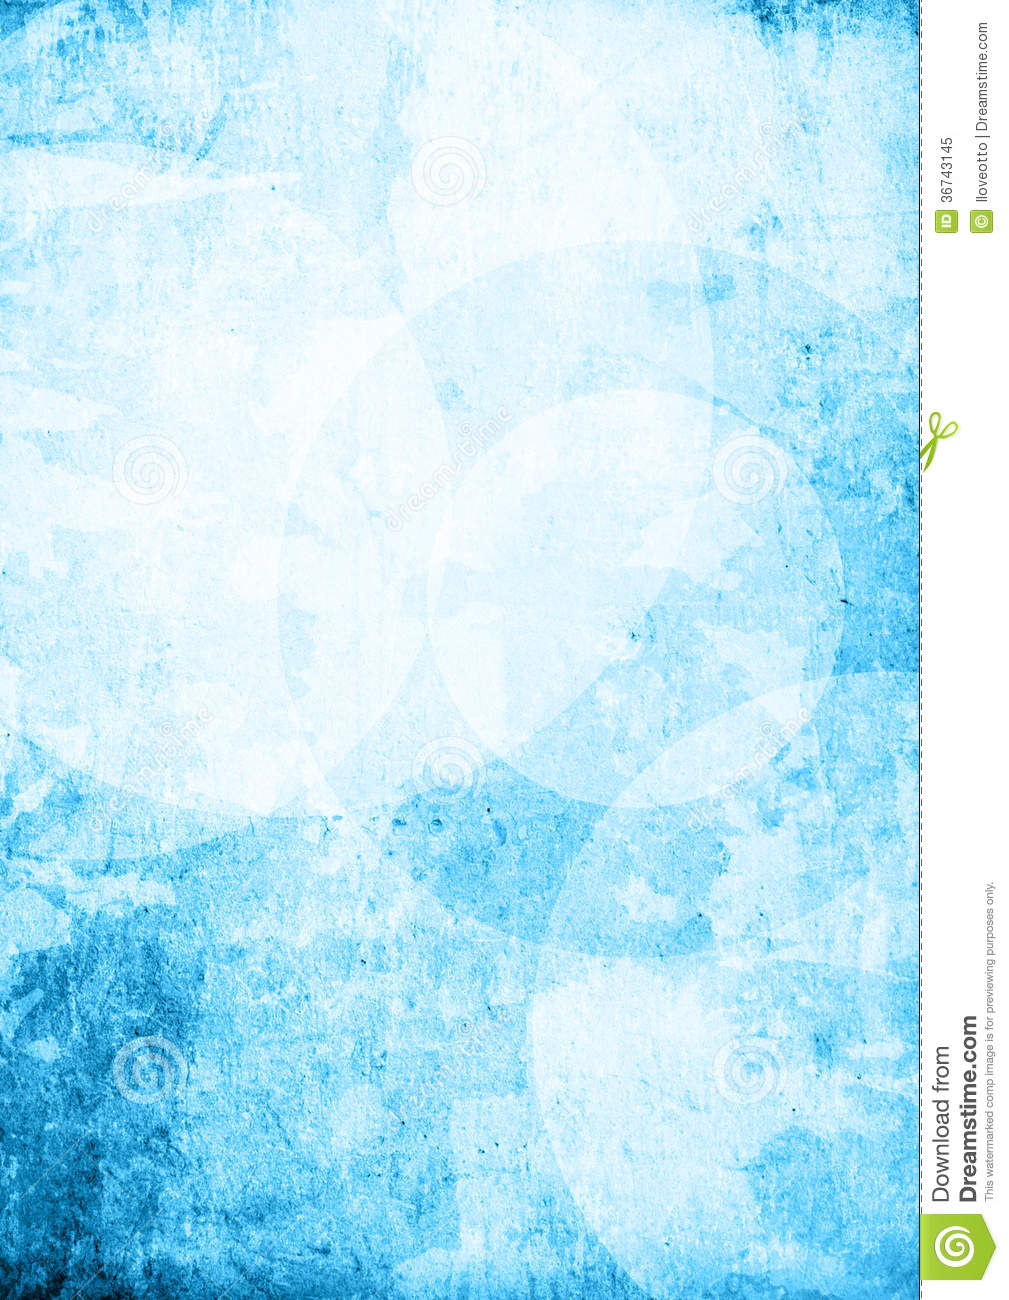 Book Cover Background Free ~ Backgrounds book cover royalty free stock photo image